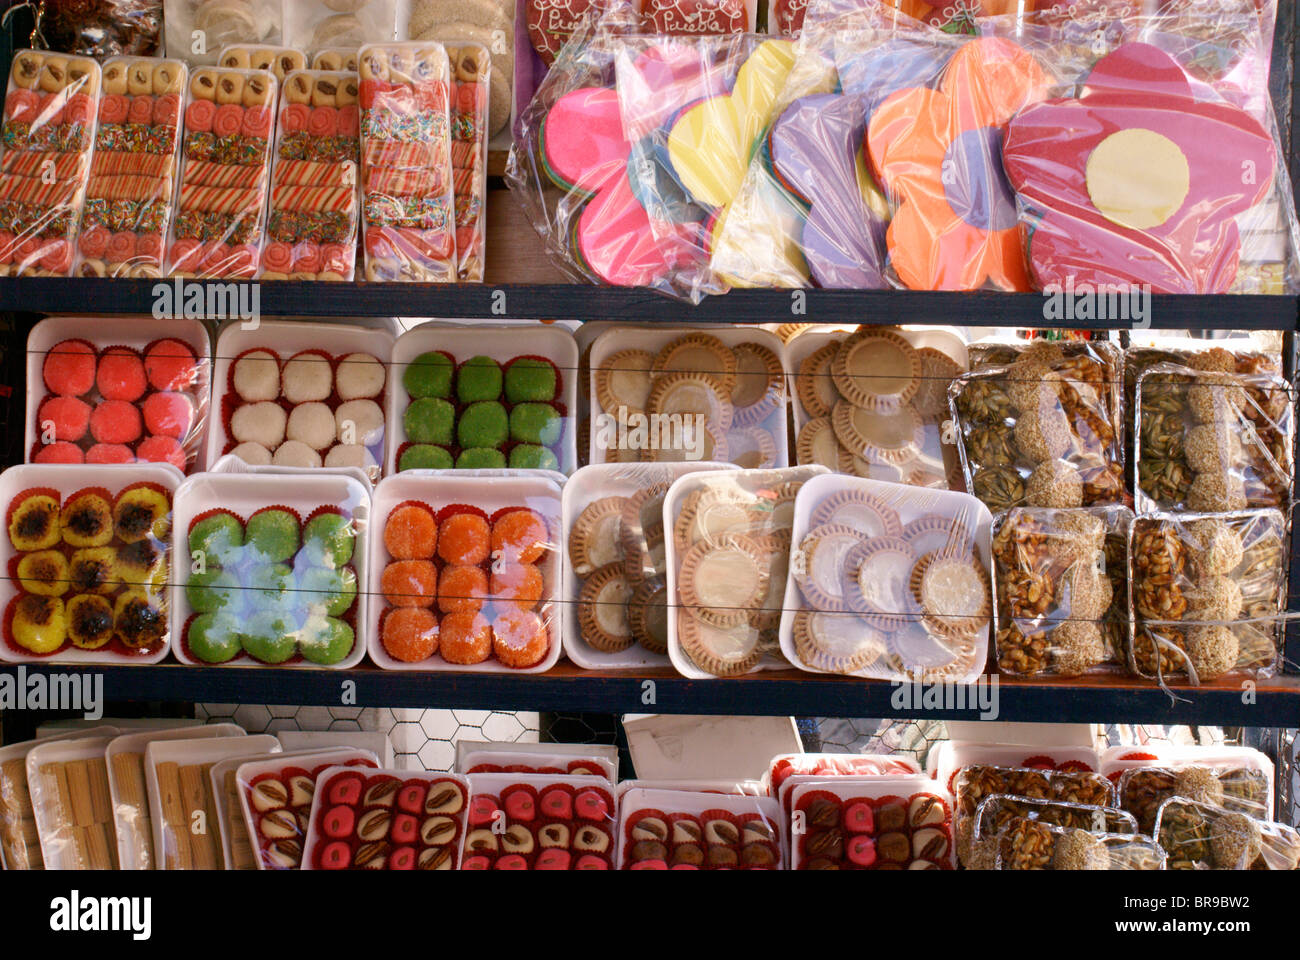 Sweets for sale in the city of Puebla, Mexico. - Stock Image